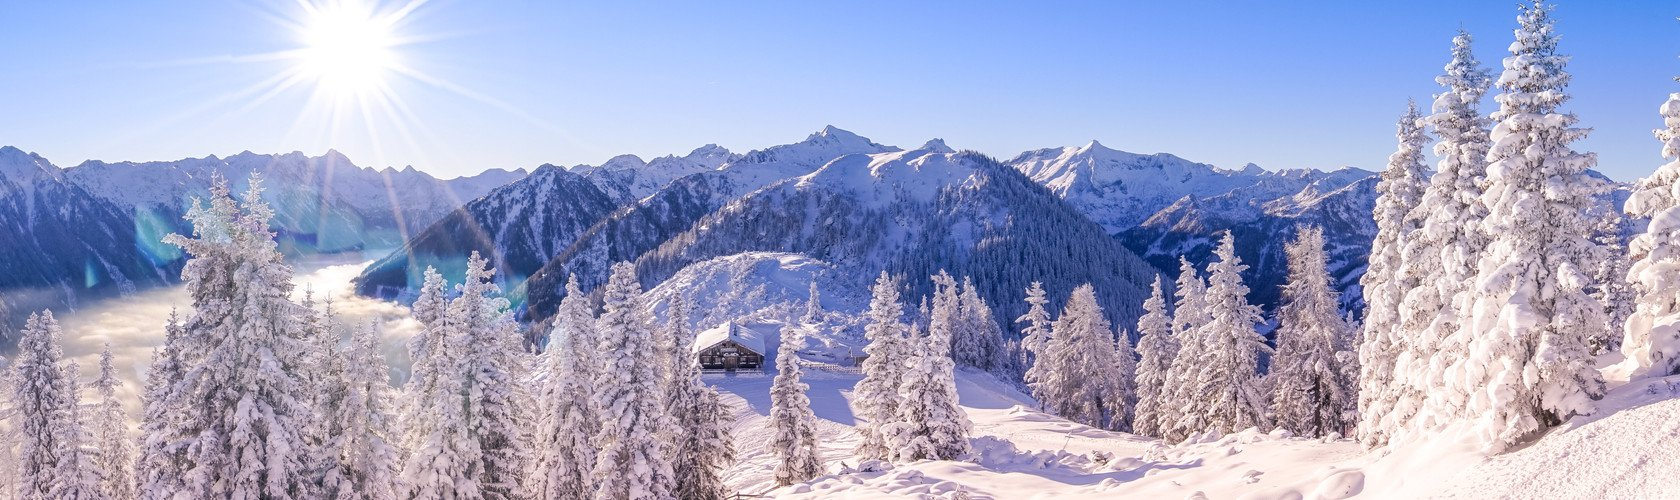 Schladming landscape family skiing